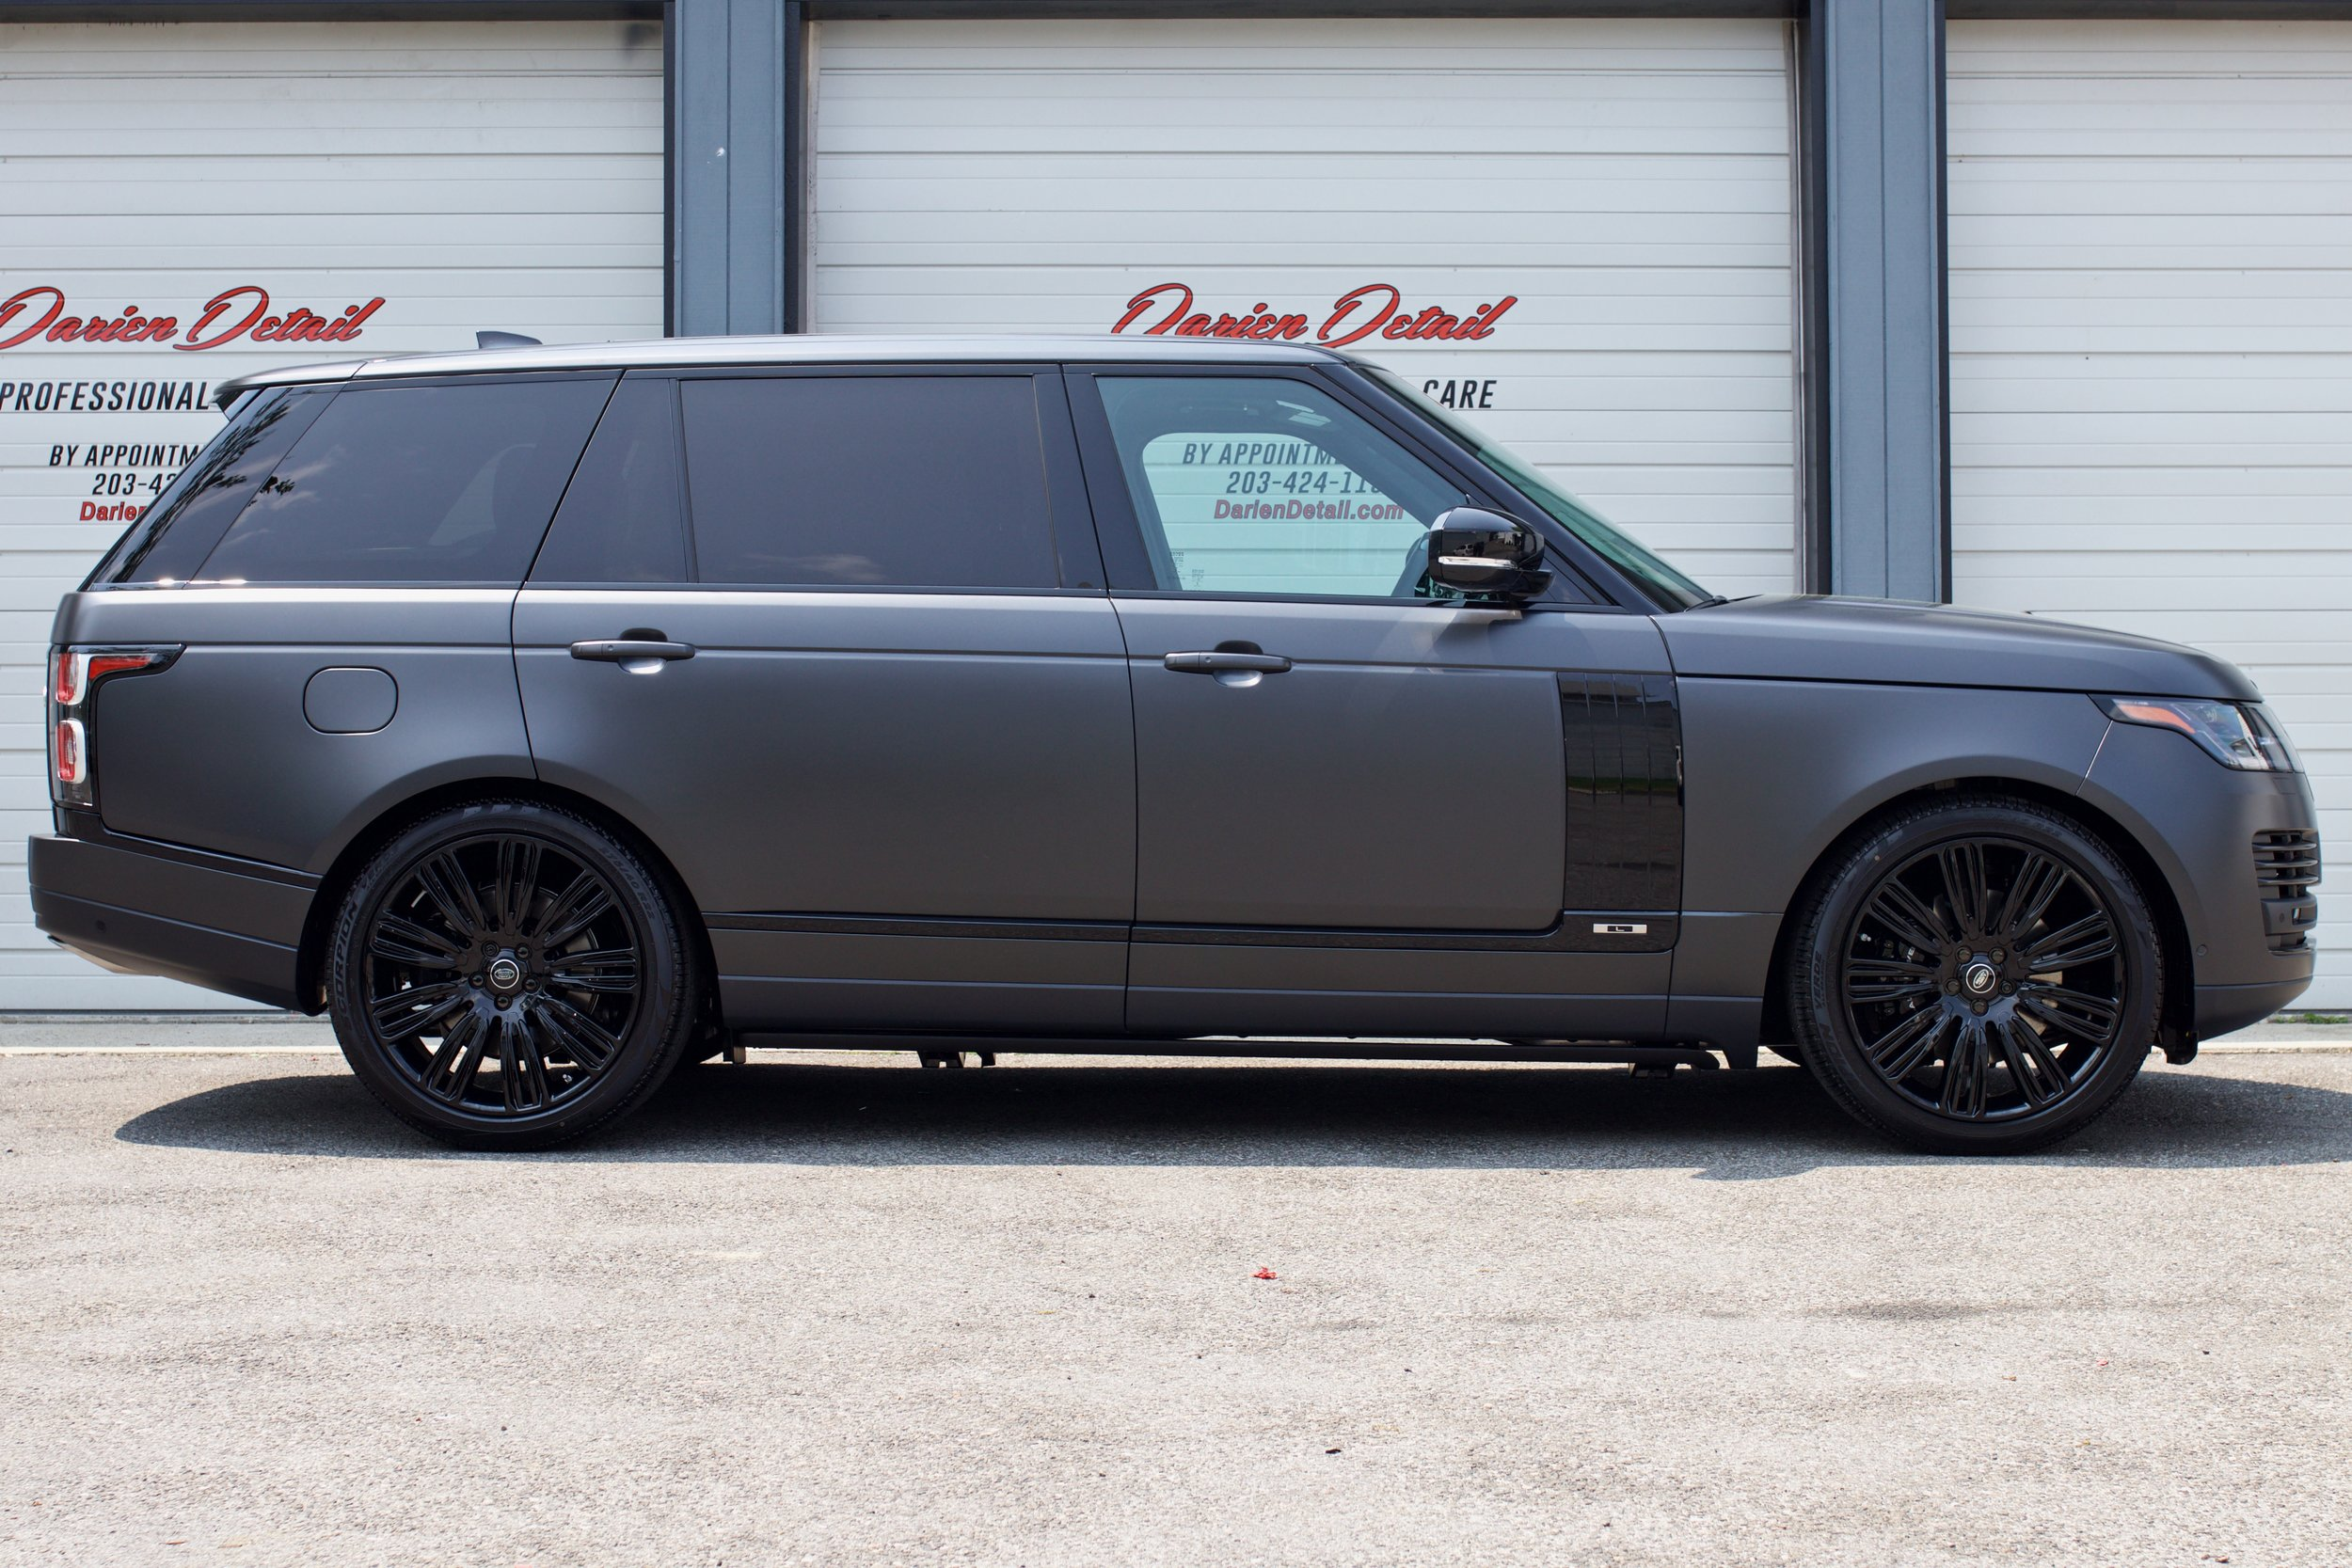 Range Rover LWB - Xpel Stealth Paint Protection Film Custom Full Body Wrap